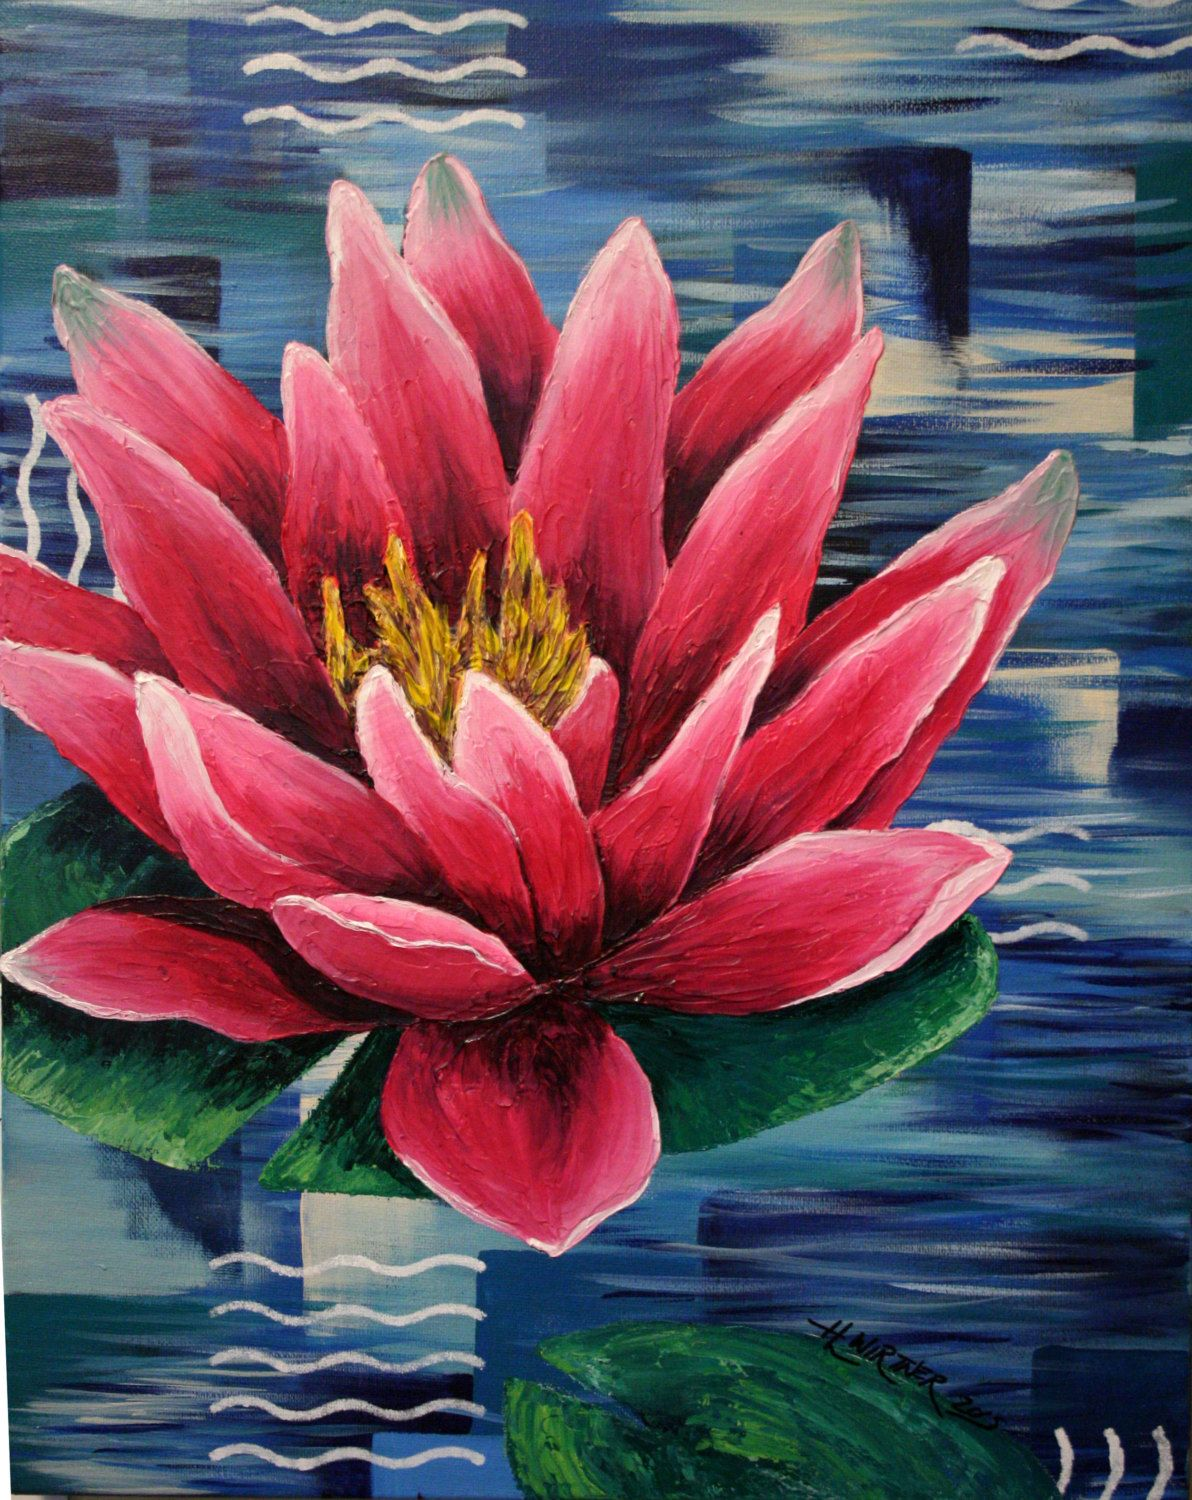 16x20 Original Acrylic Painting Of Textured Pink Water Lily On Lily